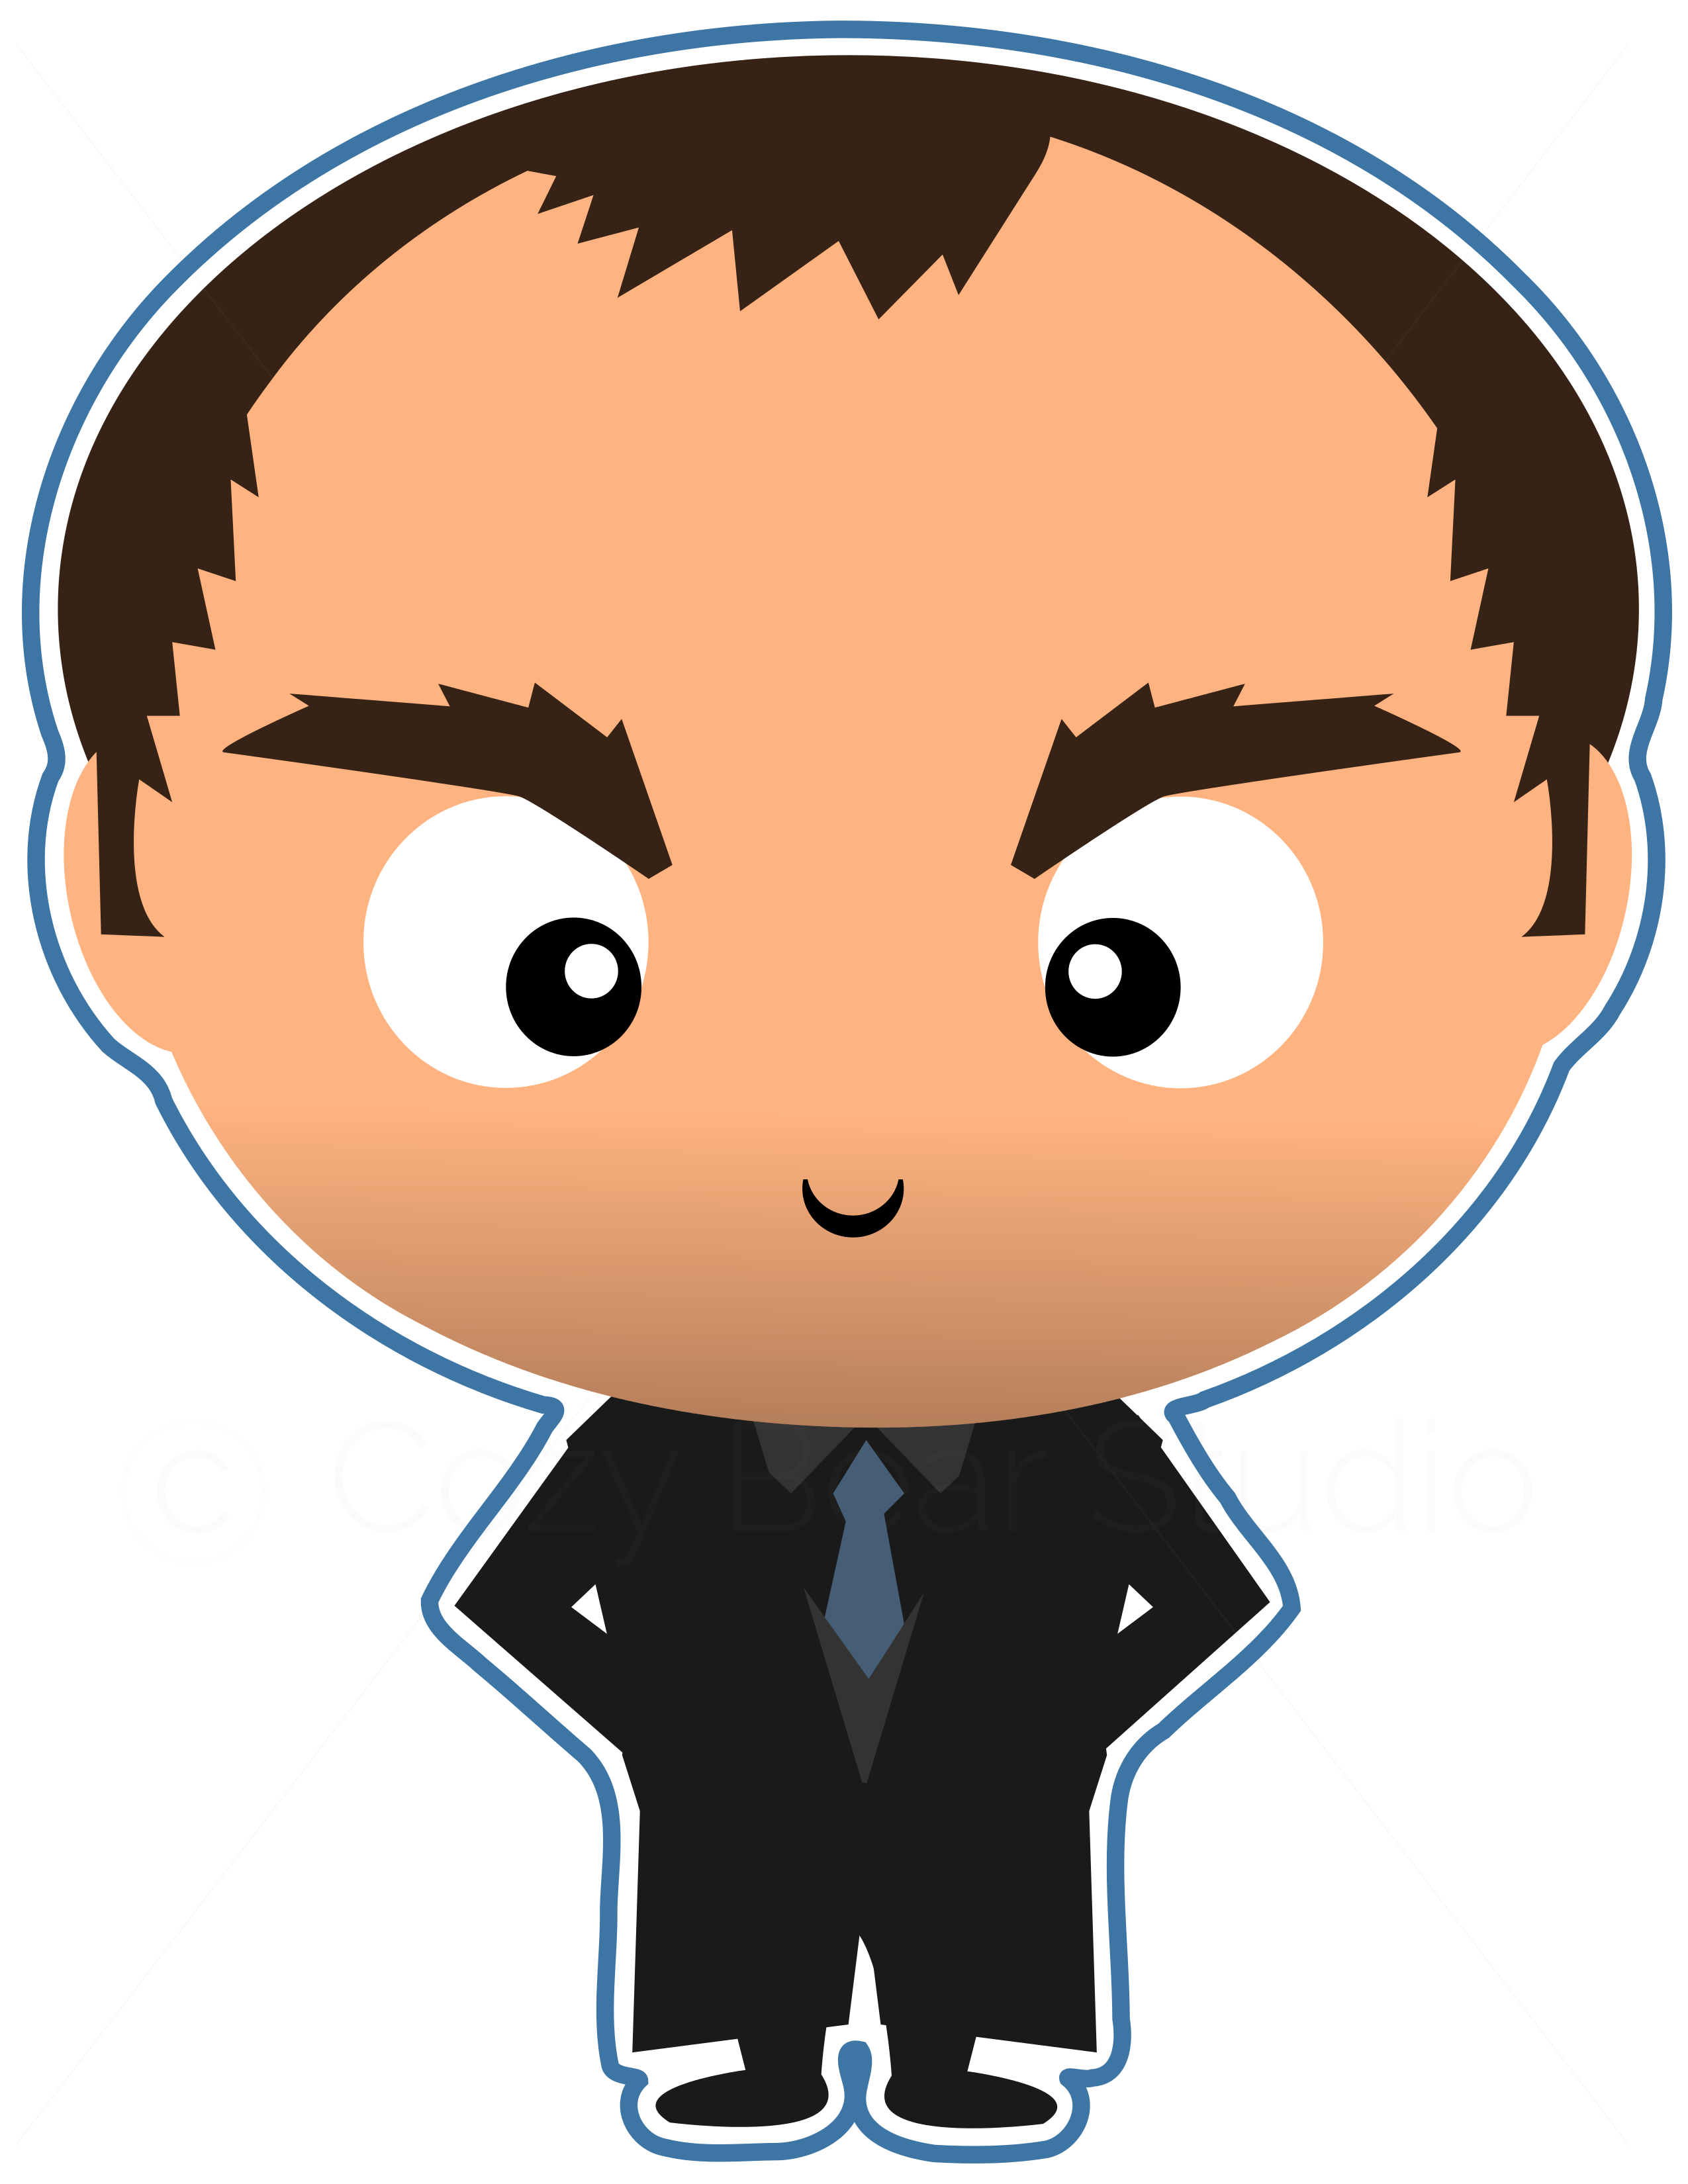 Bad school clipart svg library Supernatural Clipart - Crowley Cute Funko Pop, Mark Sheppard ... svg library